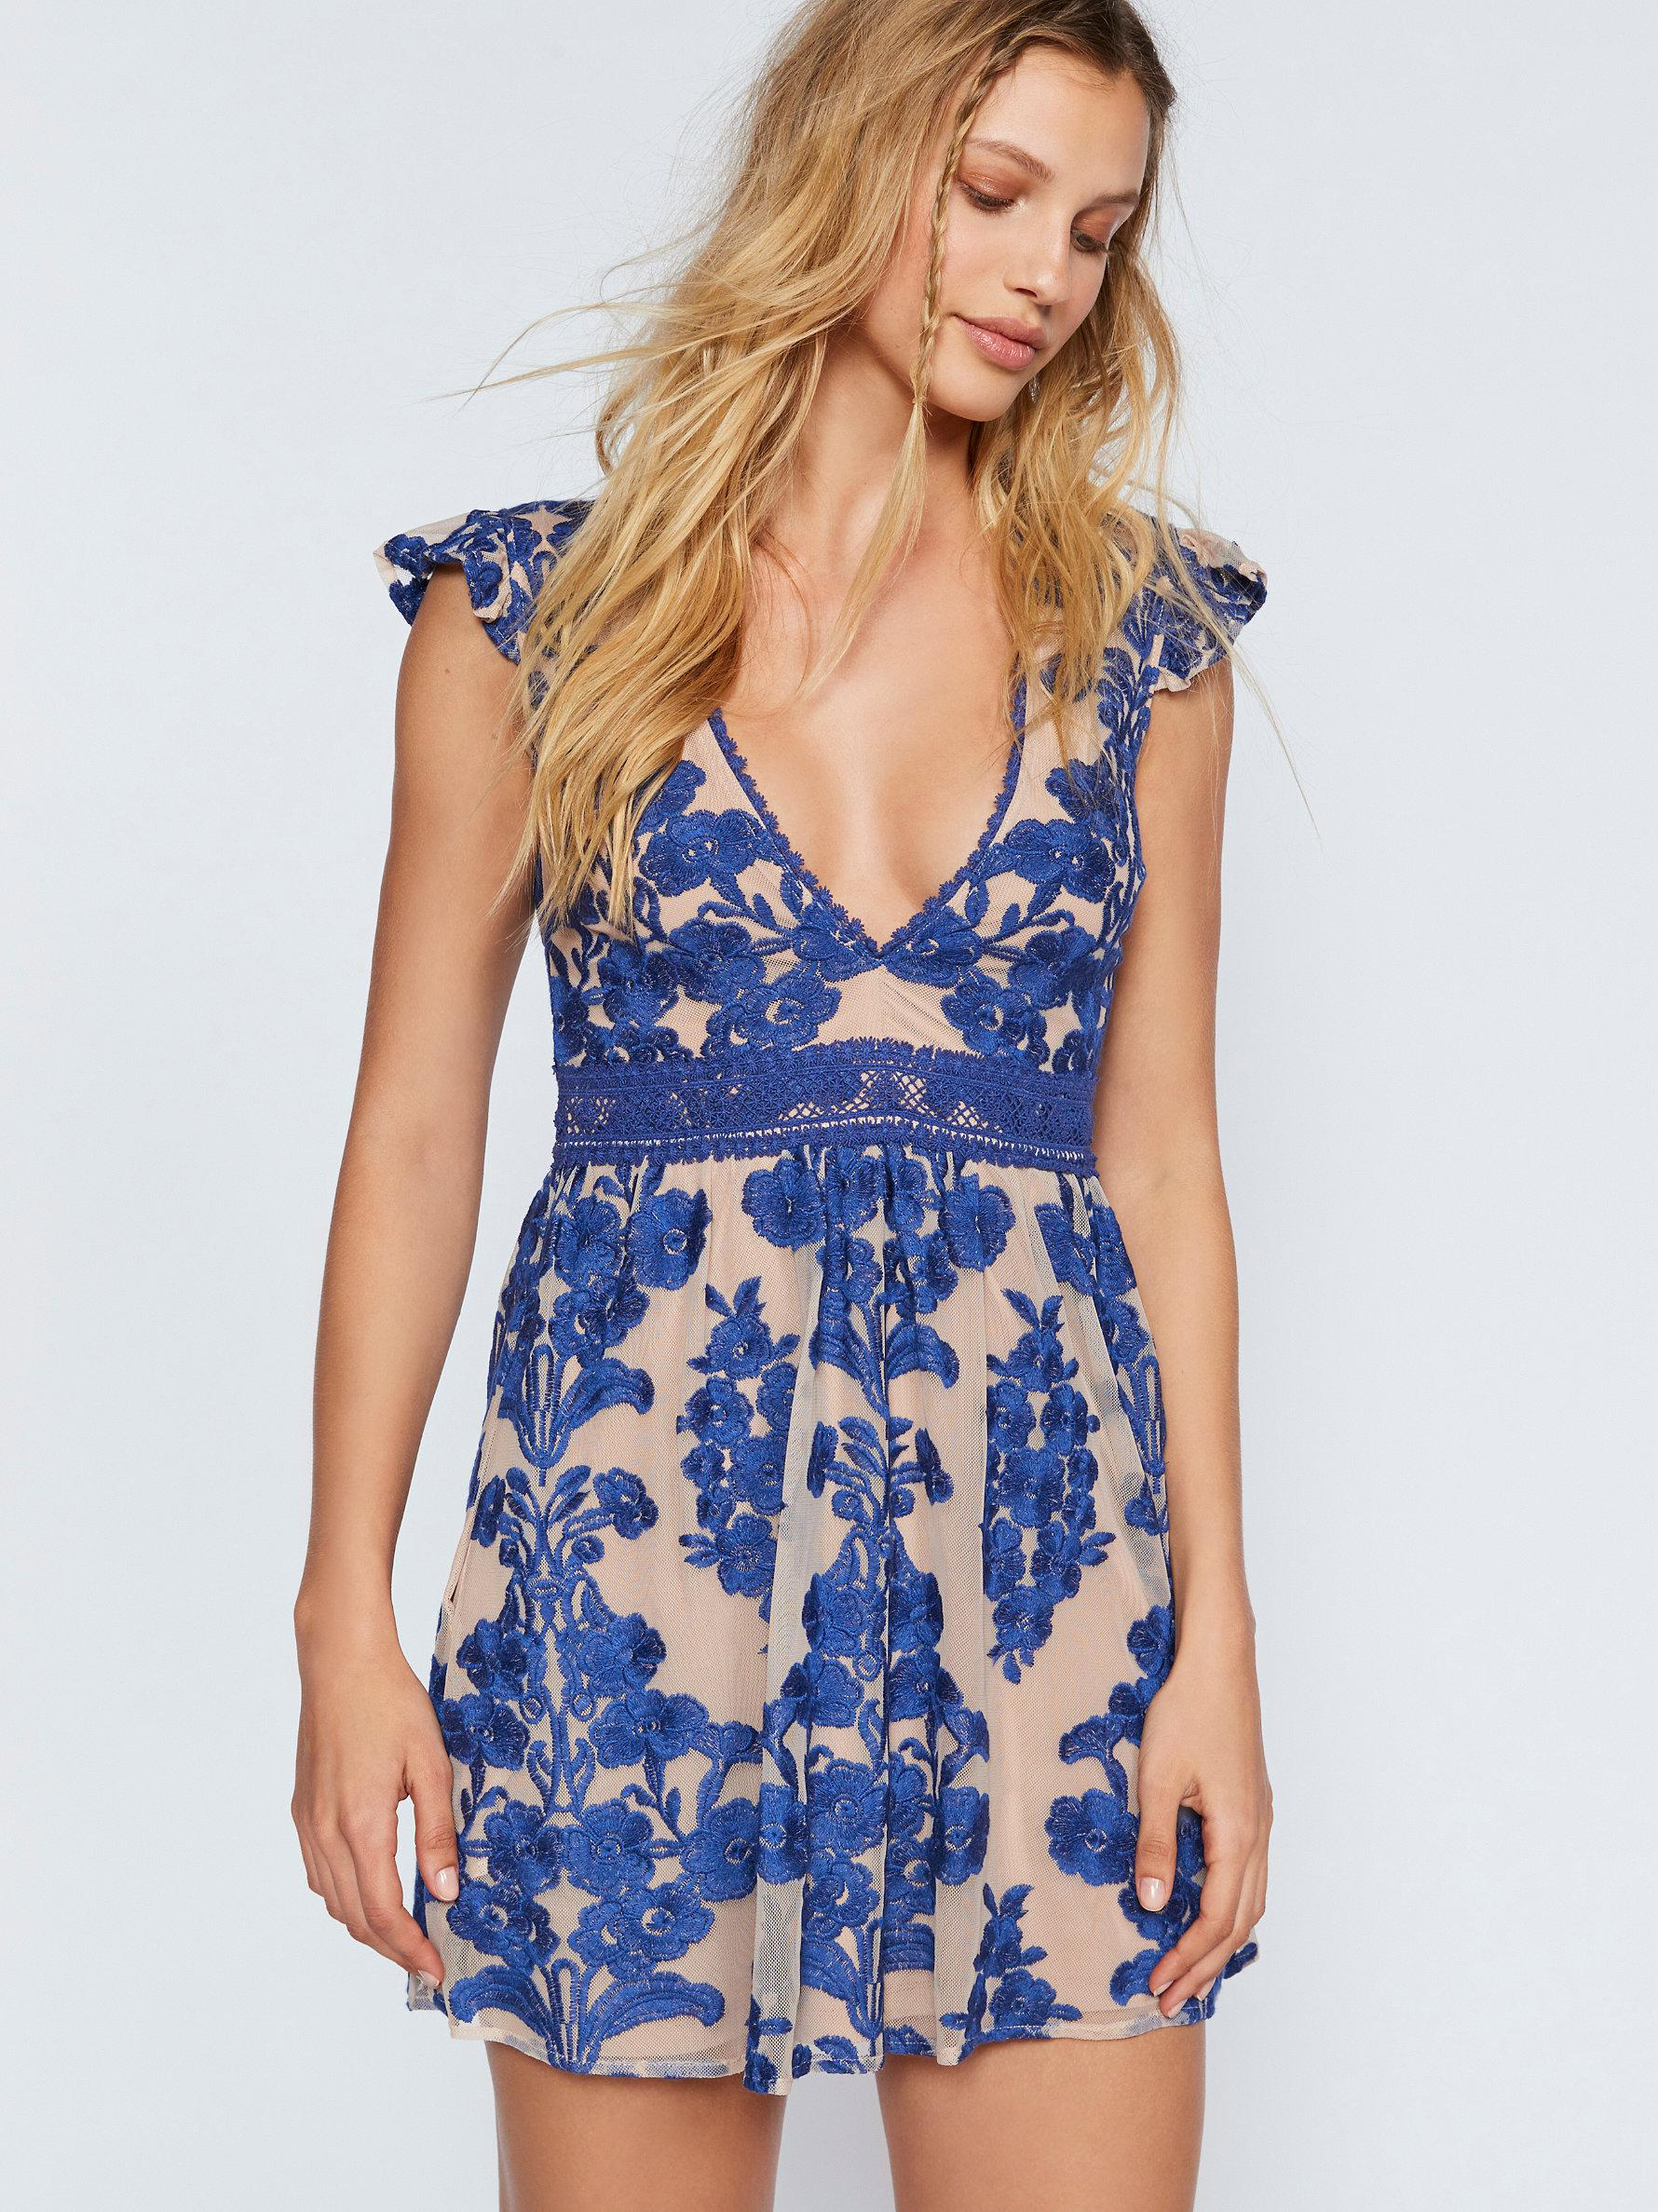 03bc8a2d789 Free People Temecula Fit-and-flare Dress in Blue - Lyst